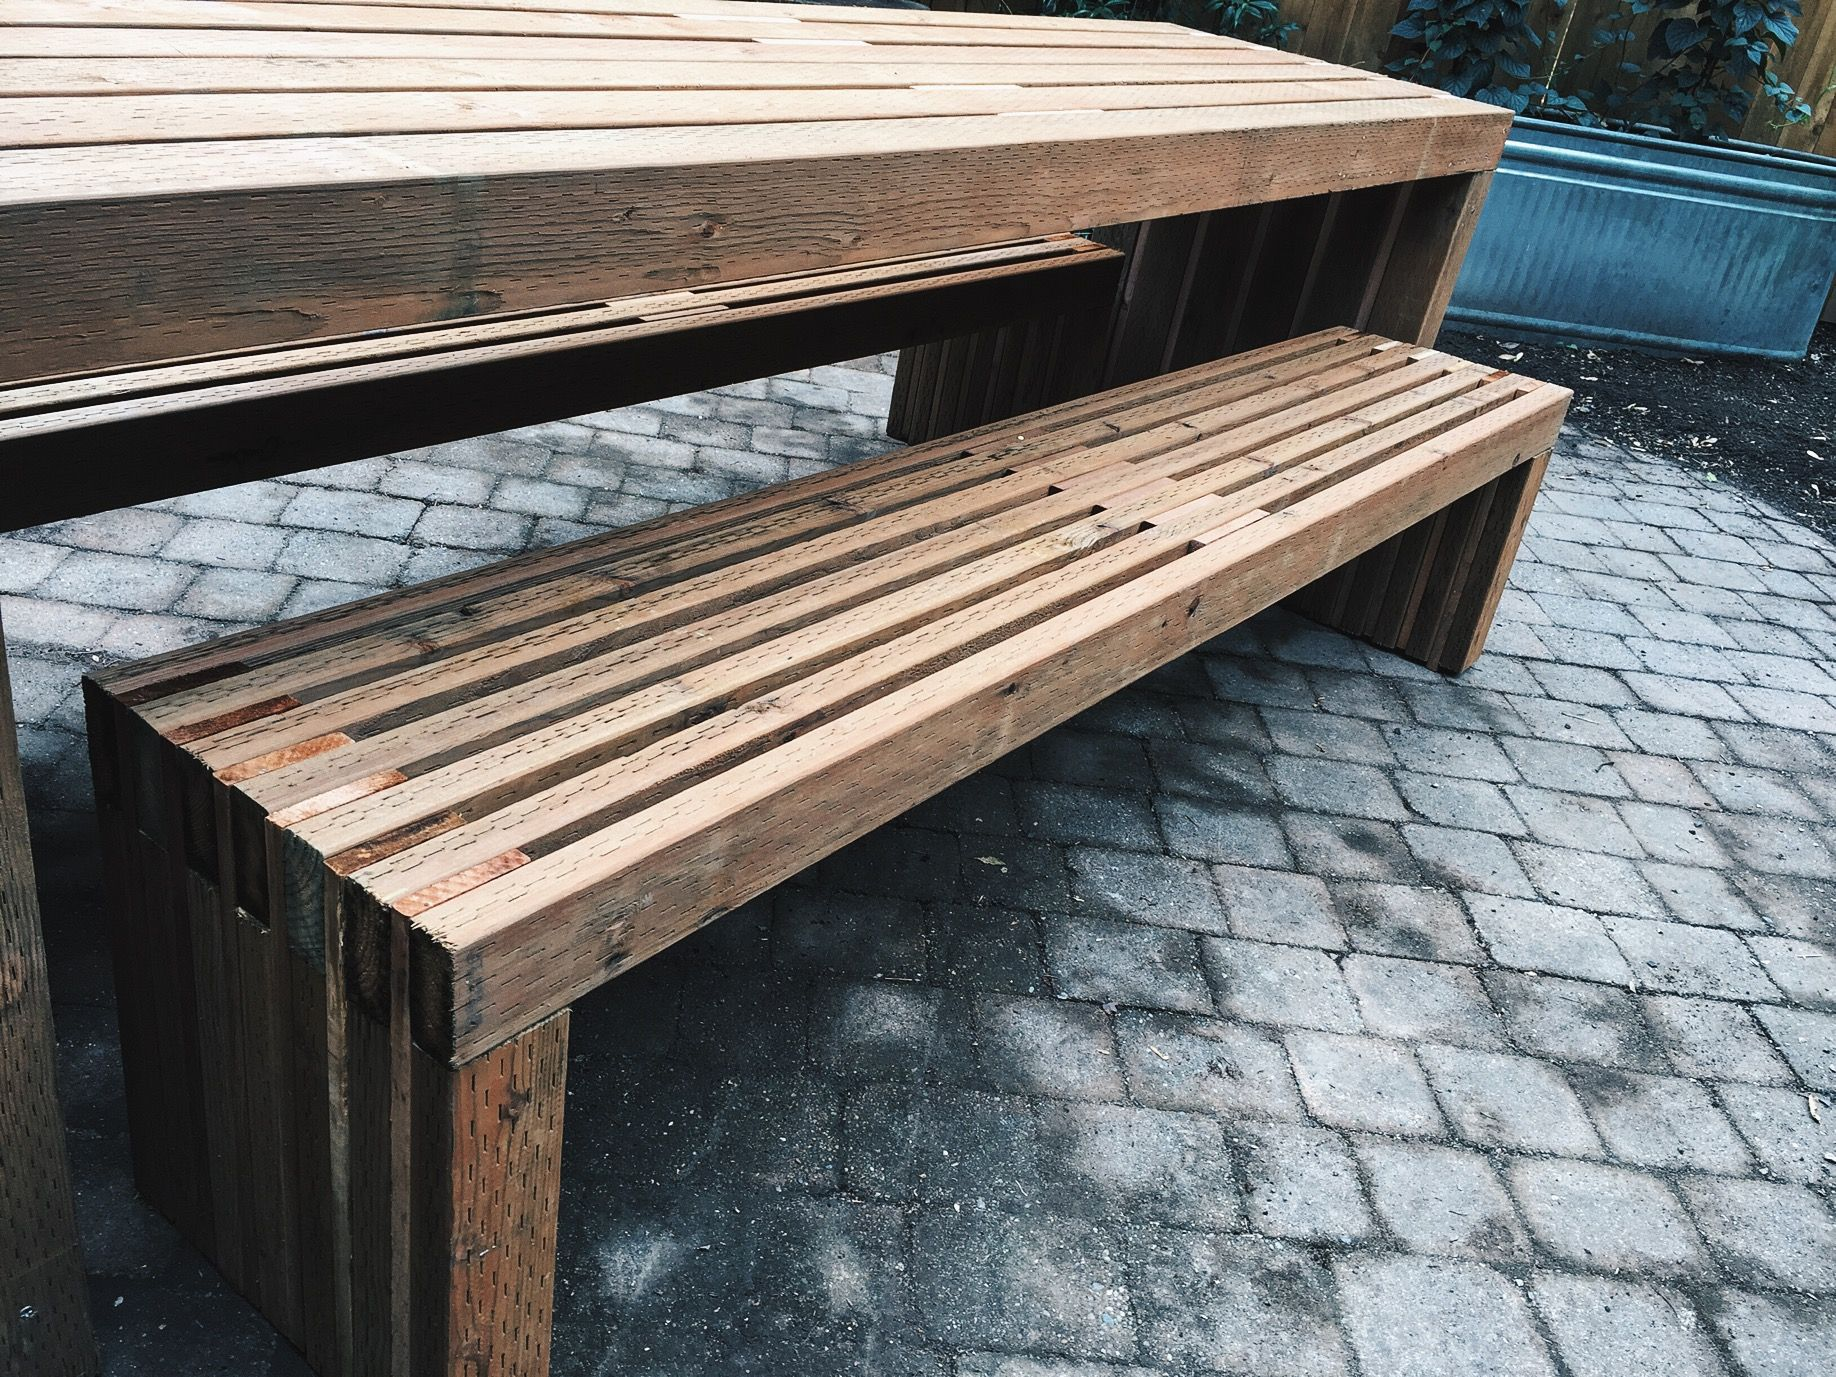 Slat Benches Outdoor Benches Built With Pressure Treated 2x4 S And Cedar Spacers Outdoor Bench Built In Bench Diy Outdoor Furniture